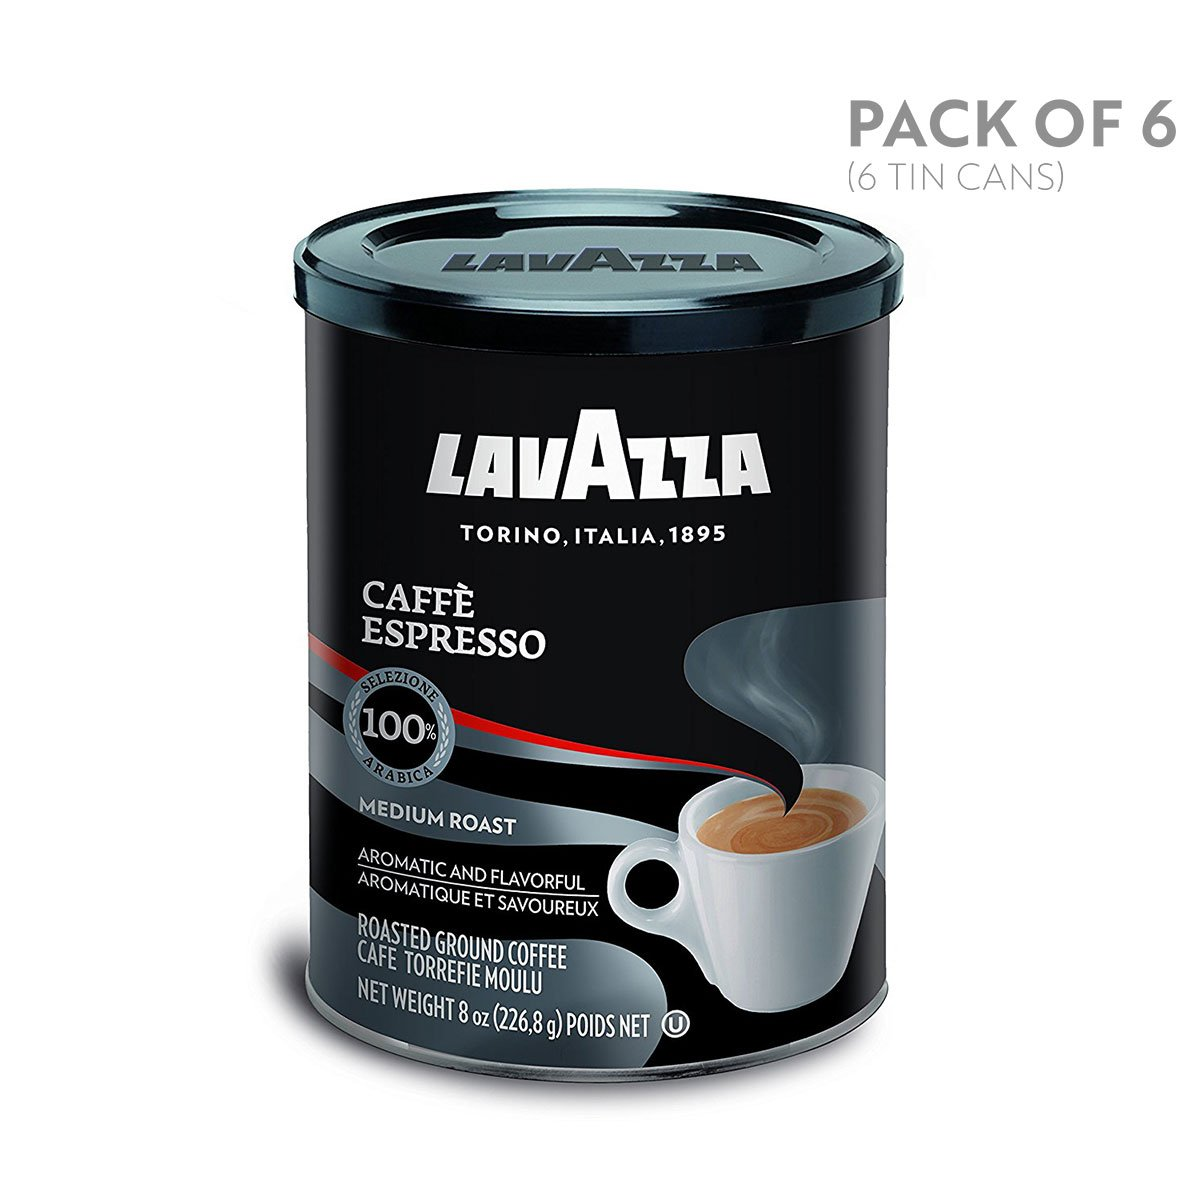 Lavazza Caffe Espresso Ground Coffee Blend, Medium Roast, 8-Ounce Cans (Pack of 6)